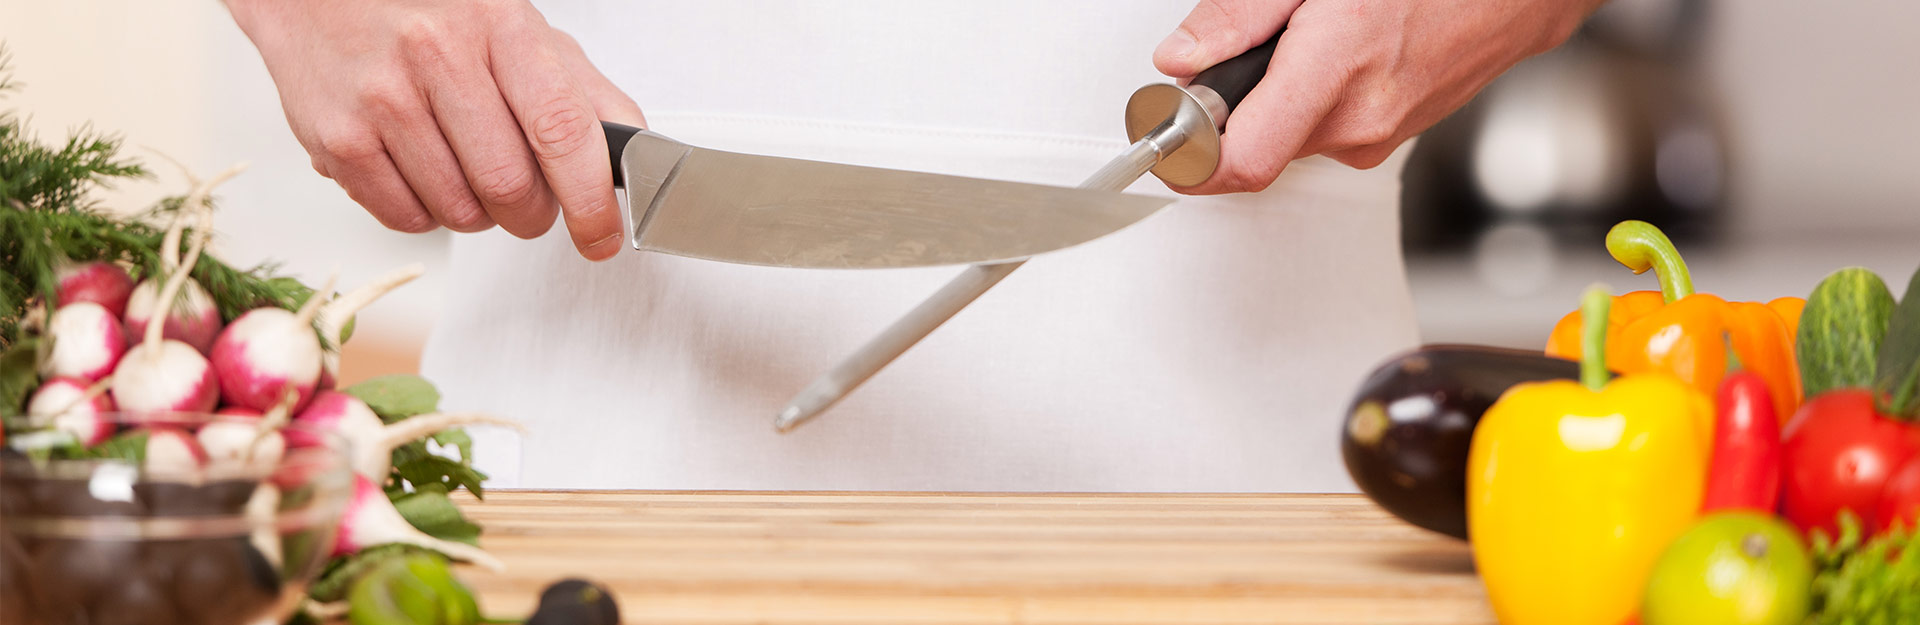 Holding knife and honer over cutting board with vegetables